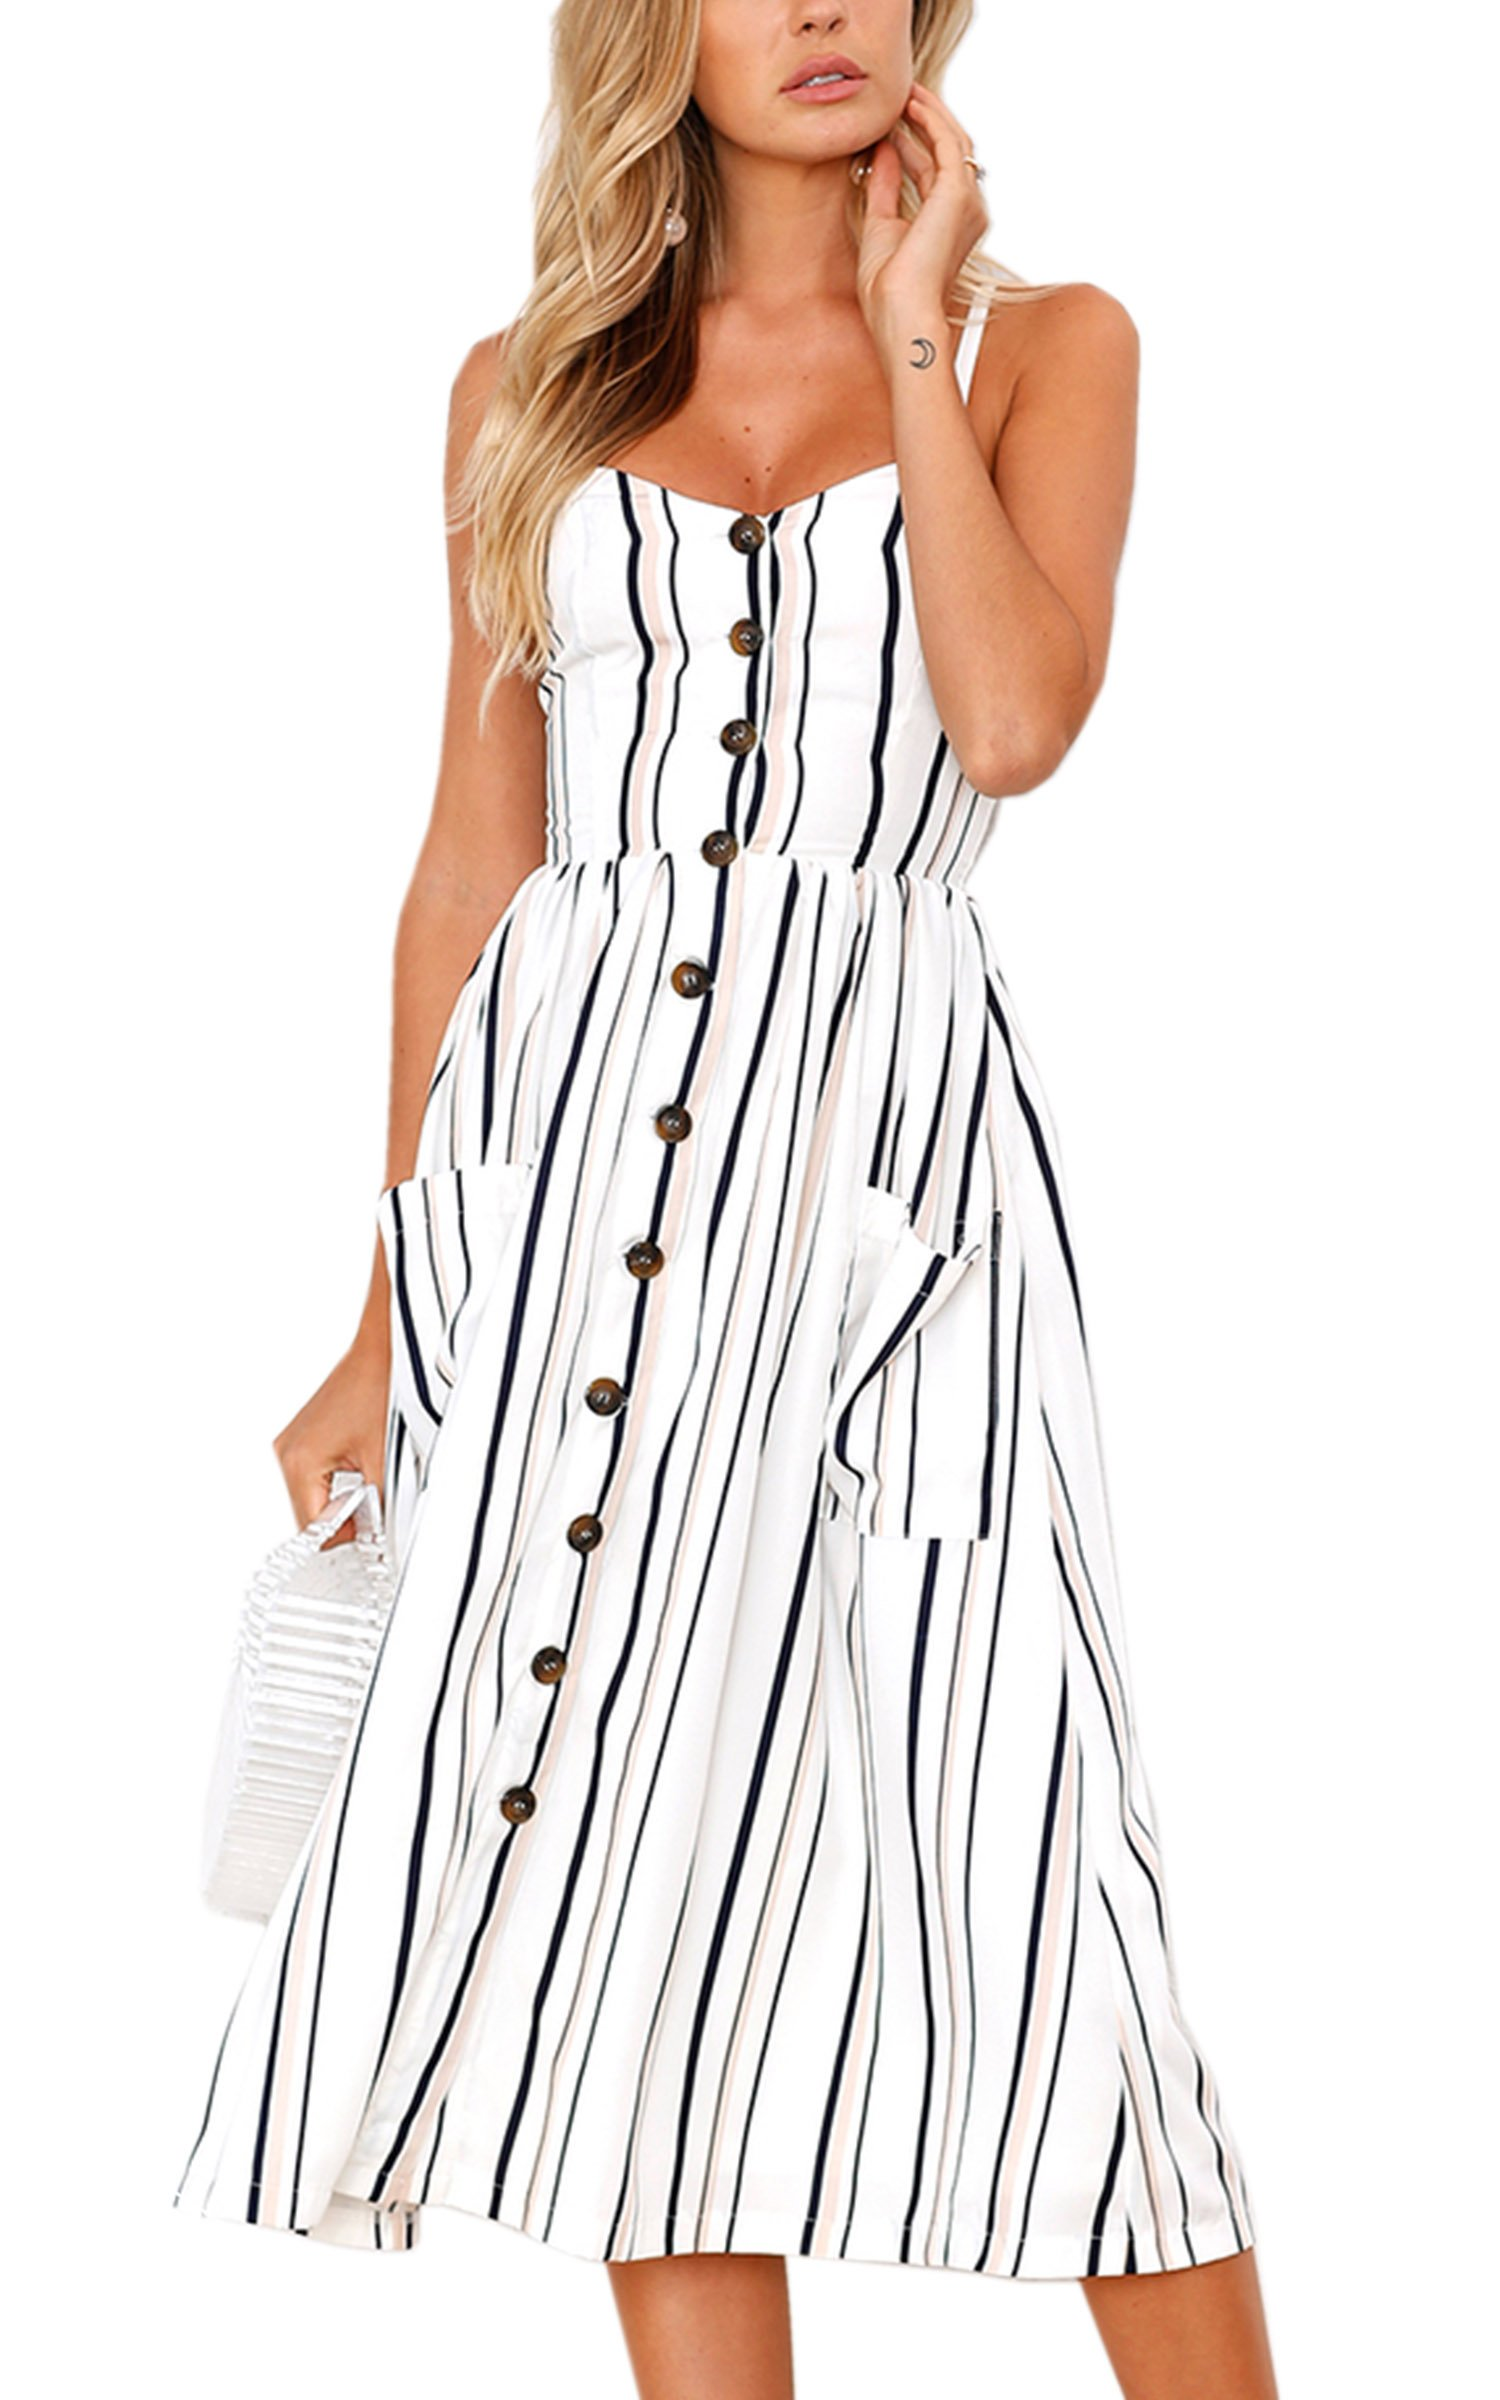 9346c30ee73d Galleon - Angashion Women's Dresses-Summer Floral Bohemian Spaghetti Strap  Button Down Swing Midi Dress With Pockets White Striped S